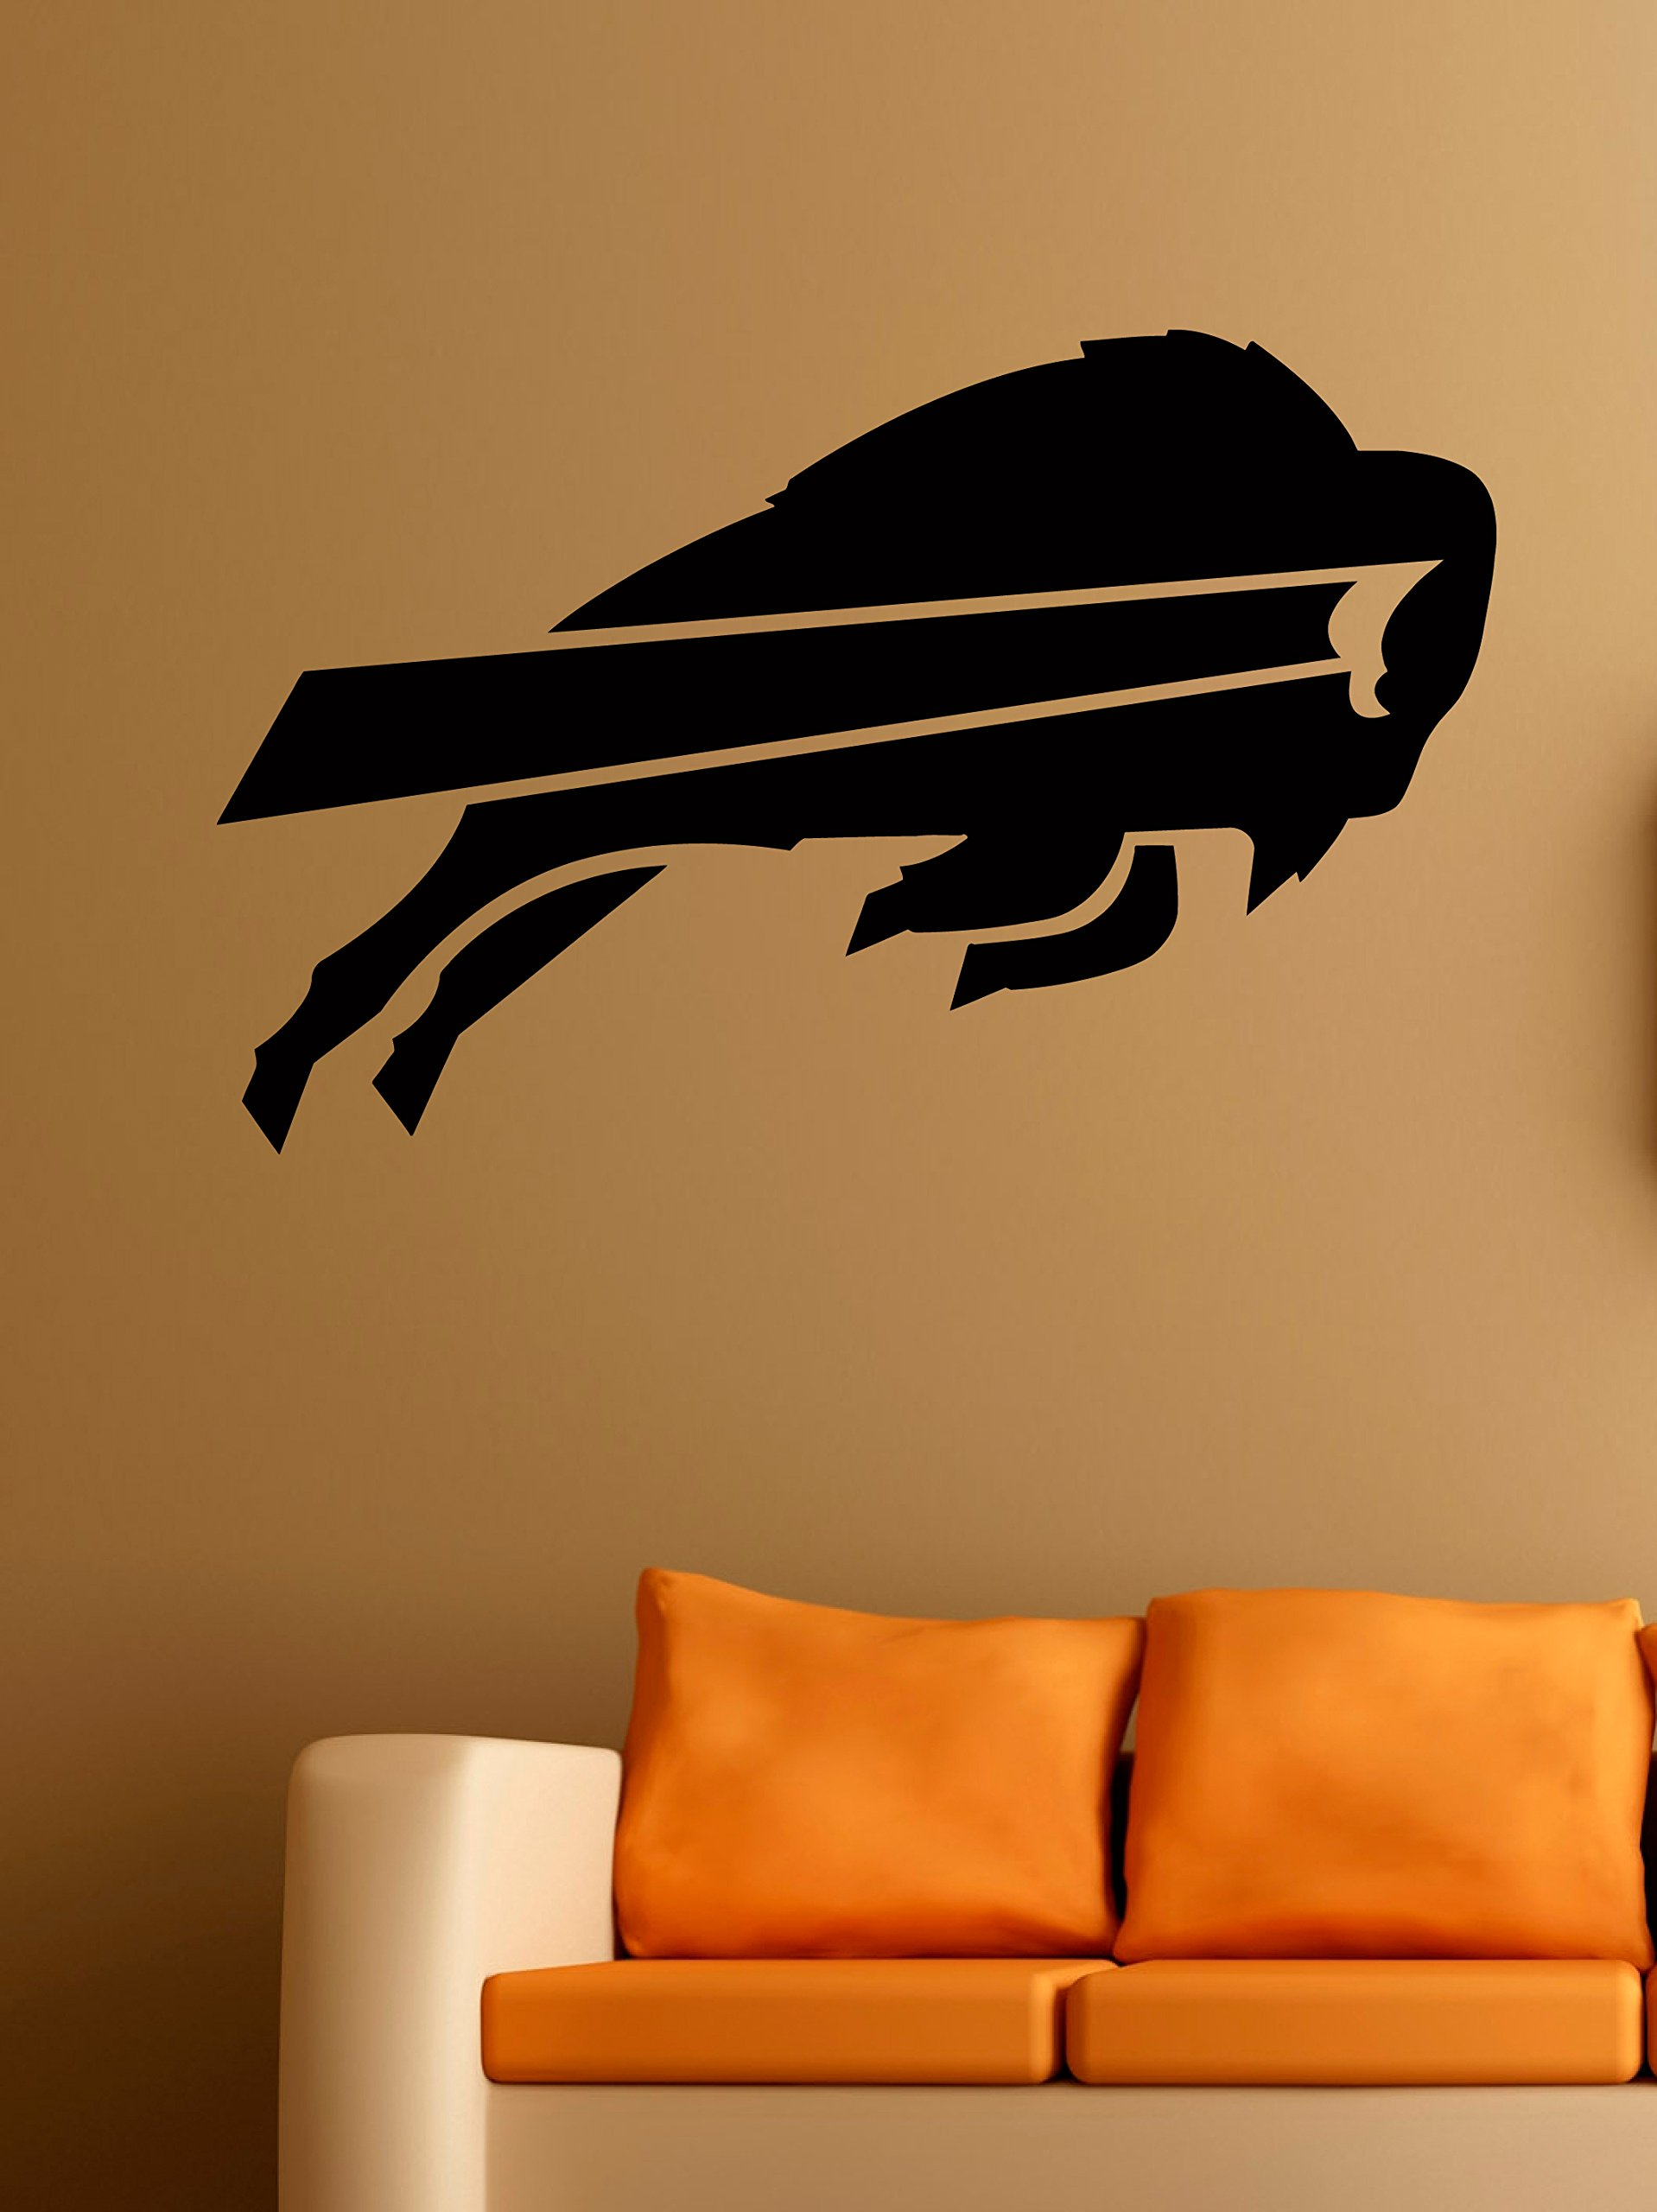 Buffalo Bills Logo Wall Vinyl Decals American Football Logotype Game Team Vinyl Decals Vinyl Murals Stickers IL1078 by Cool Design Decals